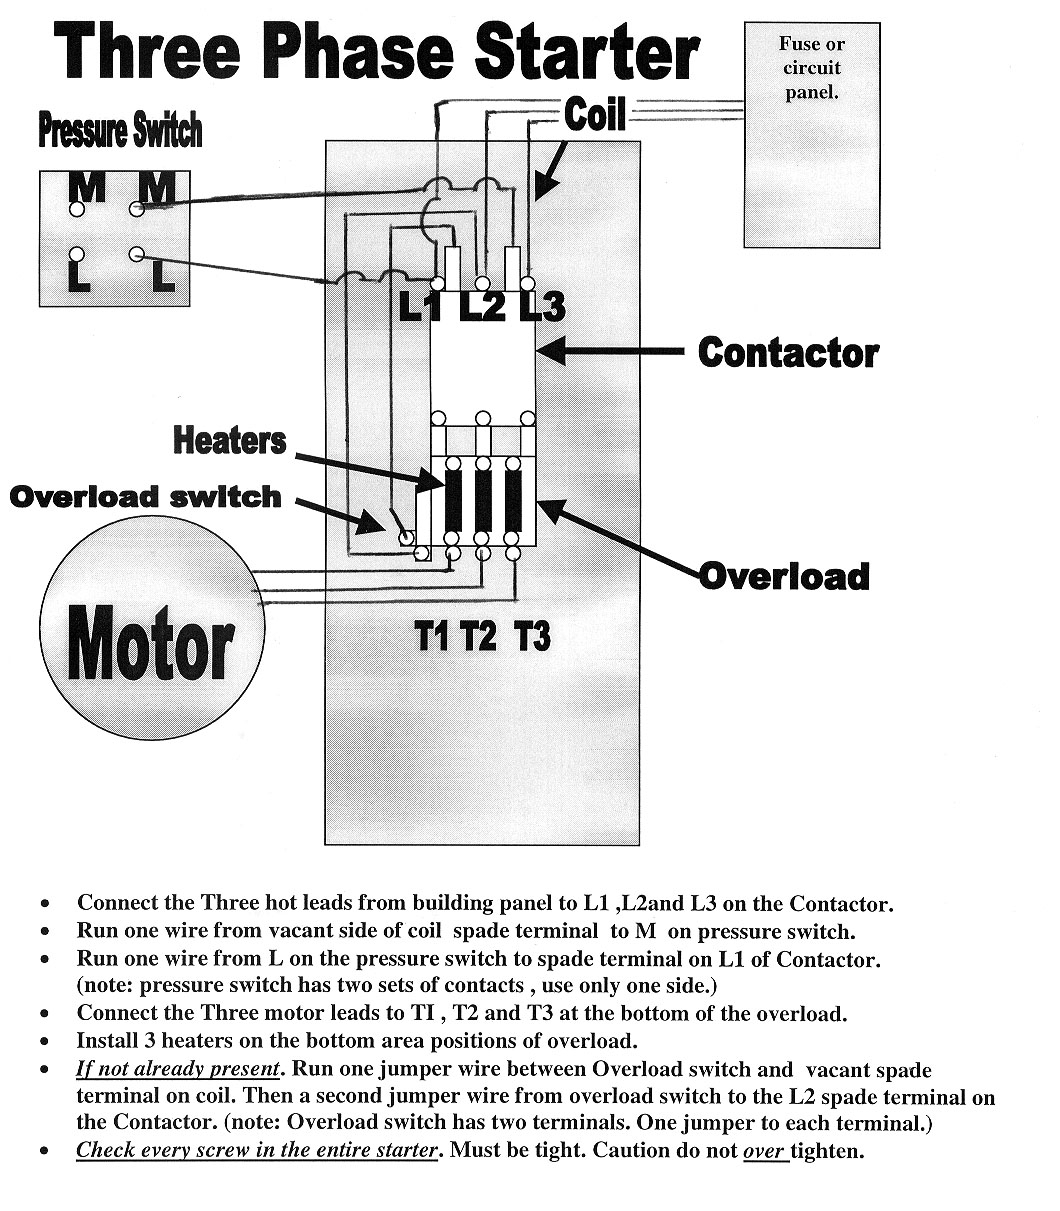 hight resolution of 3 phase contactor wiring diagram start stop weg wiring diagram single phase motor and 3